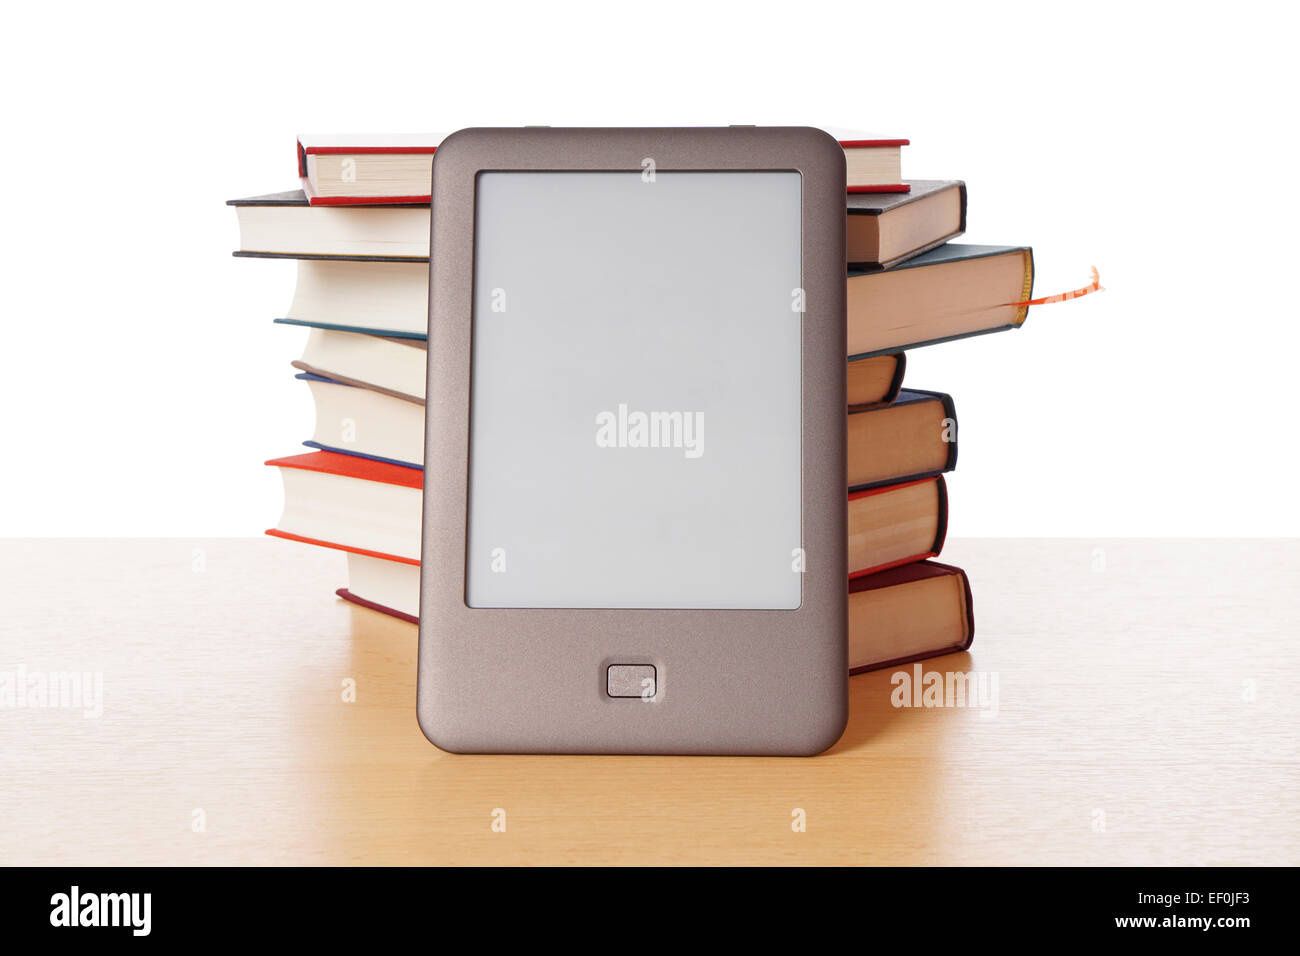 Ebook Reader vs pile of books Photo Stock